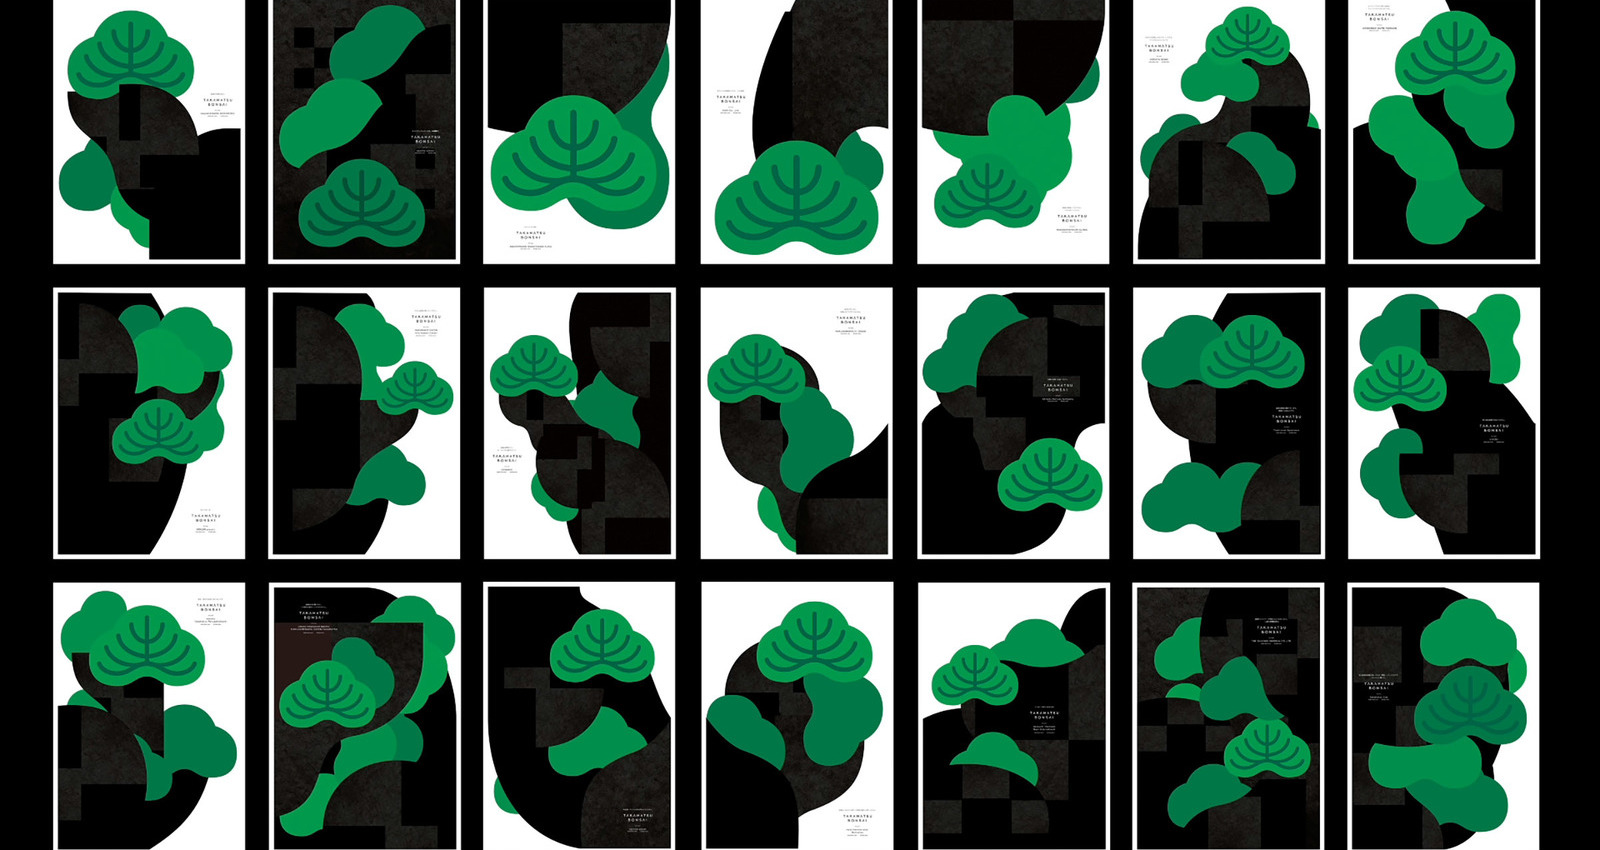 2D BONSAI:Trees for the imagination